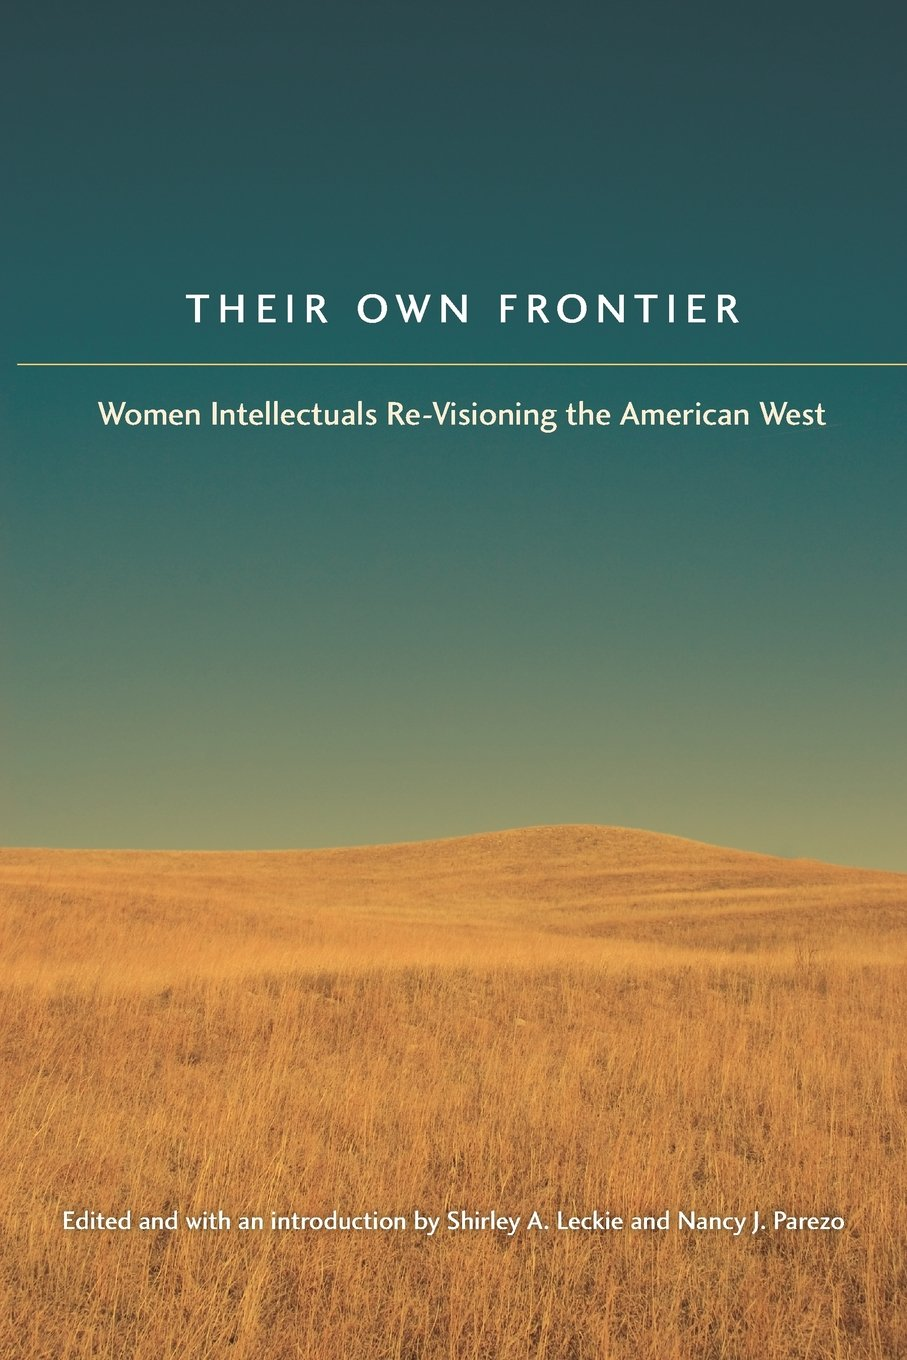 Their Own Frontier: Women Intellectuals Re-Visioning the American West (Women in the West) PDF